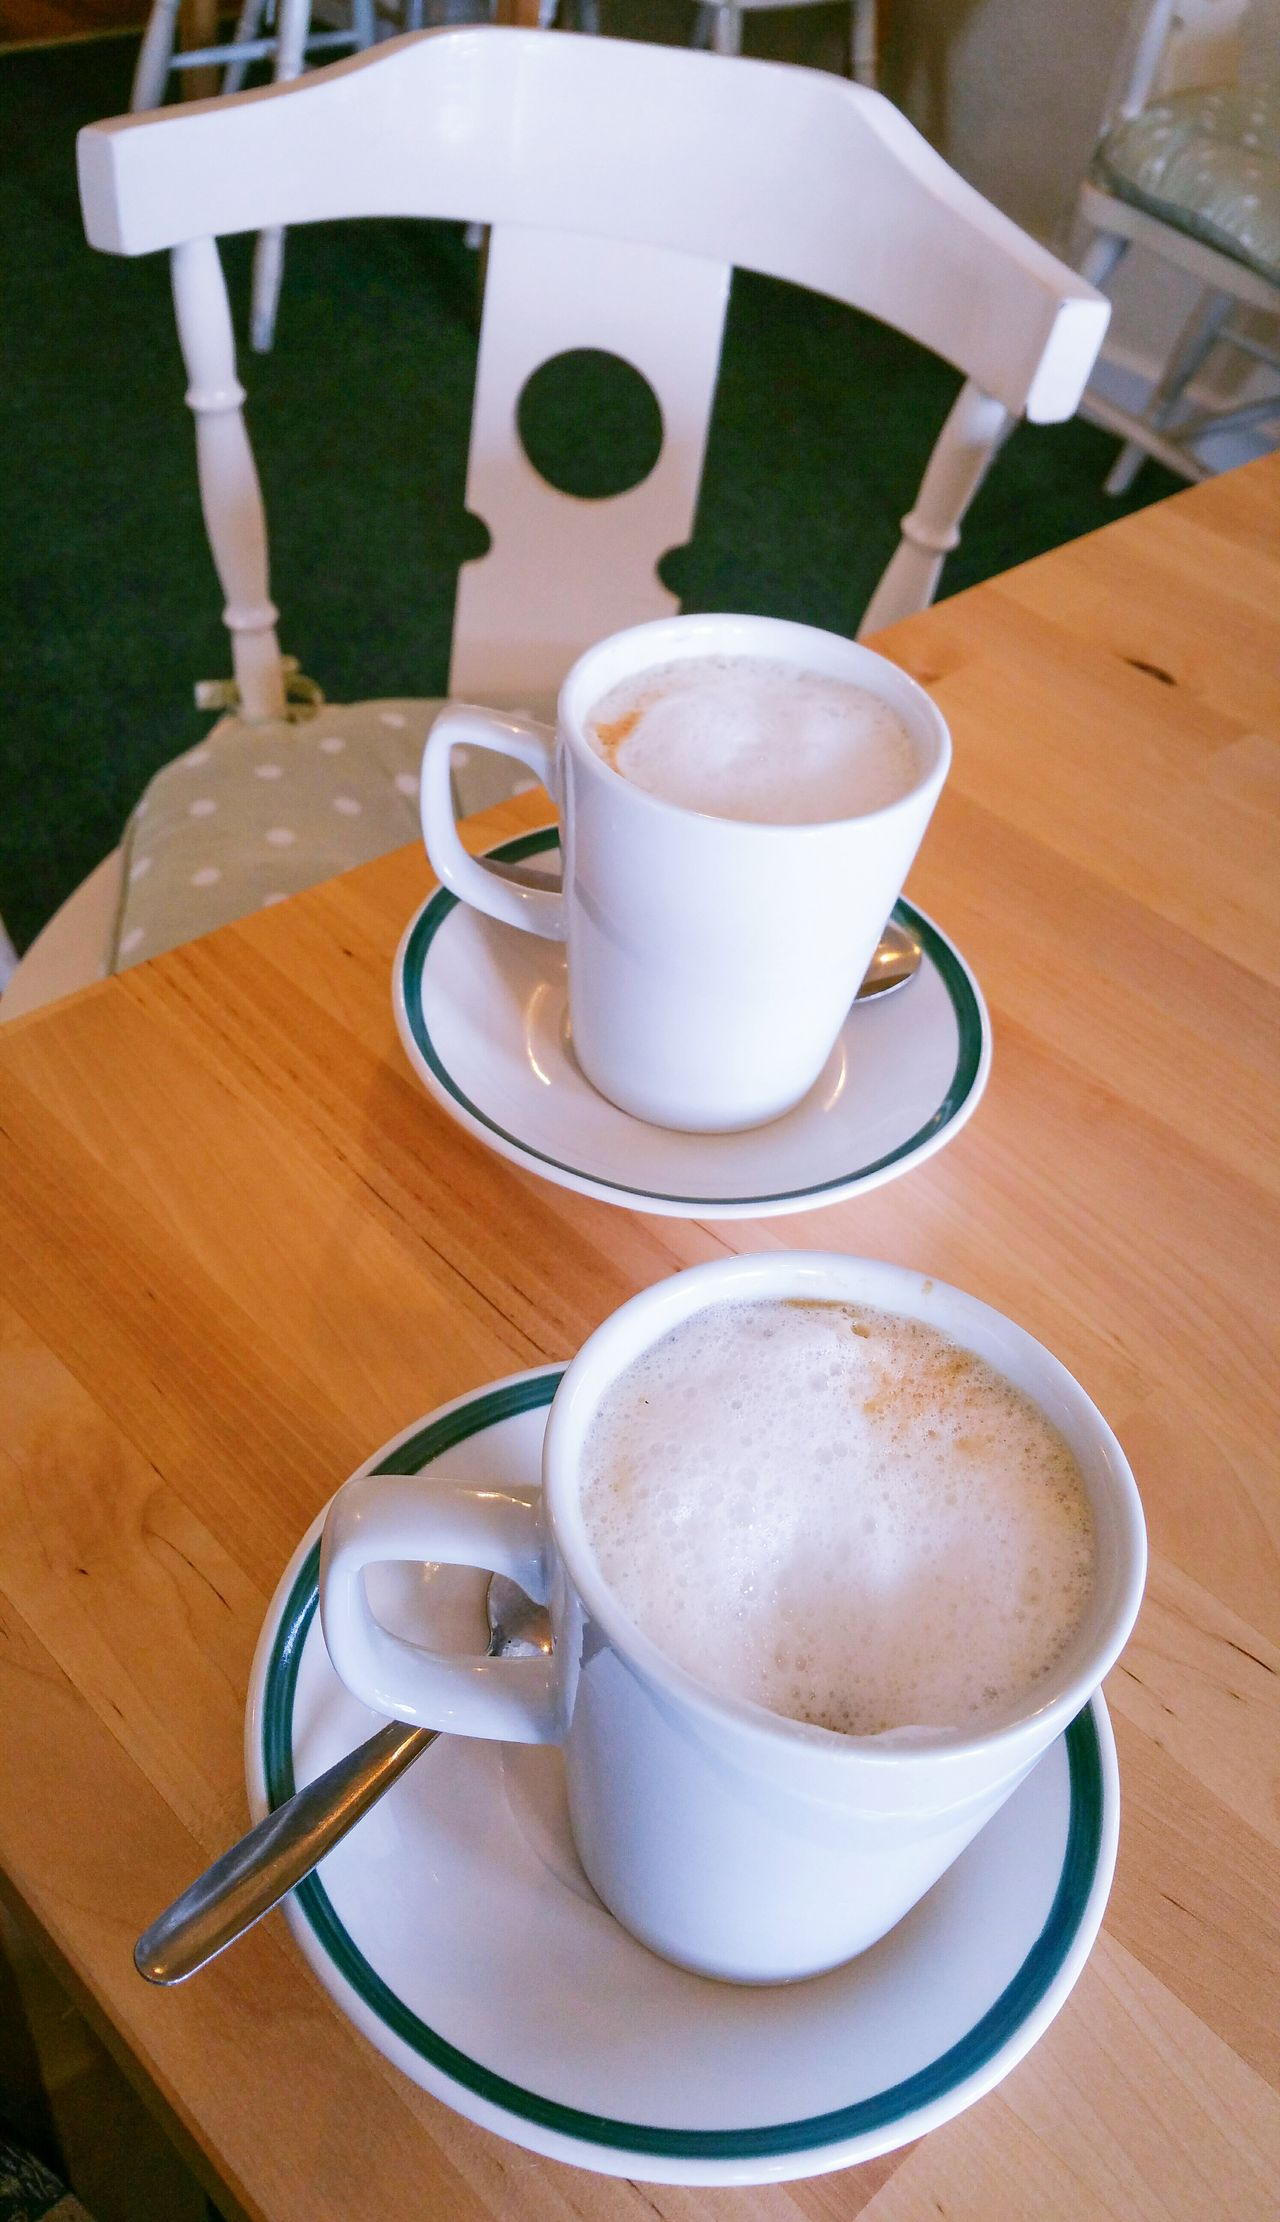 2 Latte Cups in a Caffee Coffee - Drink Coffee Cup Table Drink Saucer Food And Drink High Angle View Refreshment Cappuccino No People Close-up Freshness Indoors  Ready-to-eat Day Chair